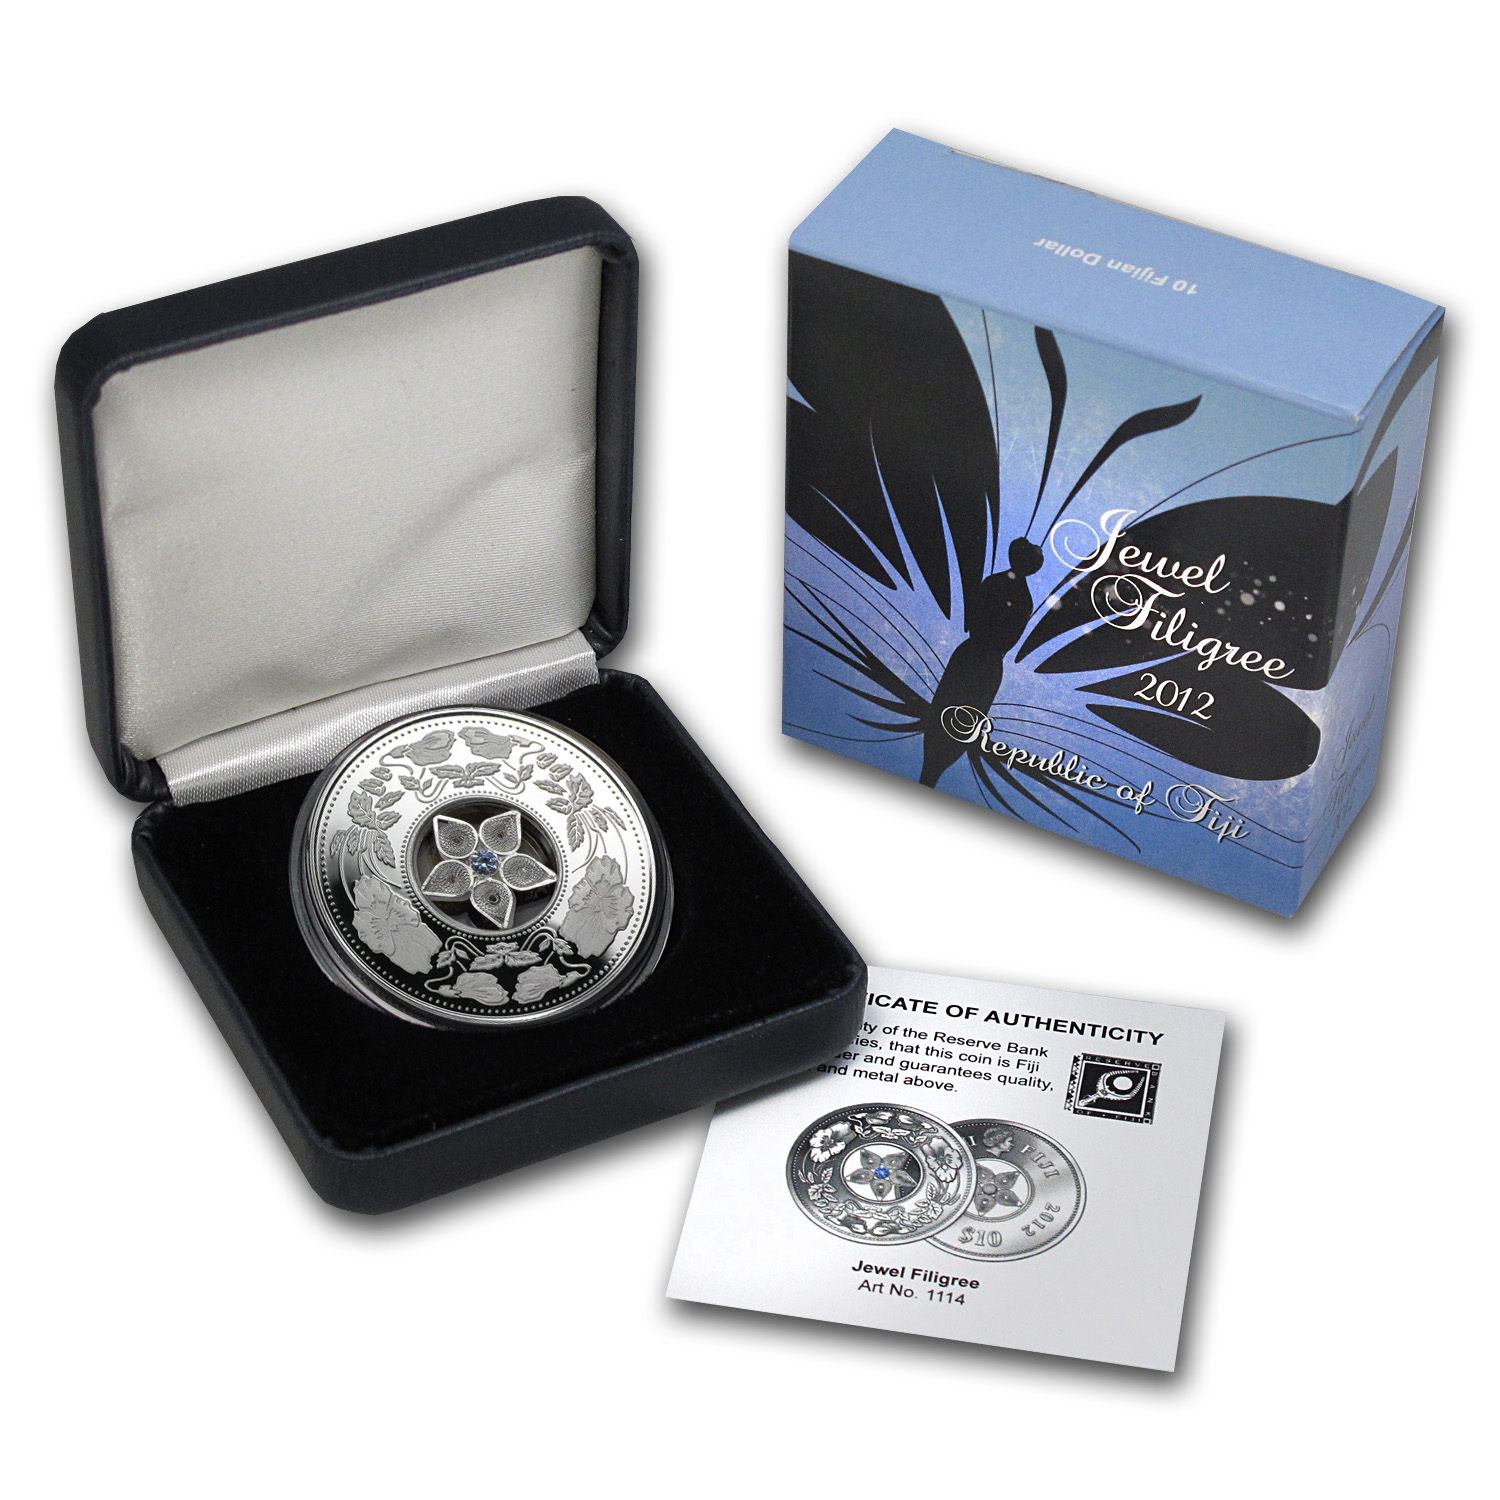 Fiji 2012 Silver $10 Jewel Filigree Zirconia